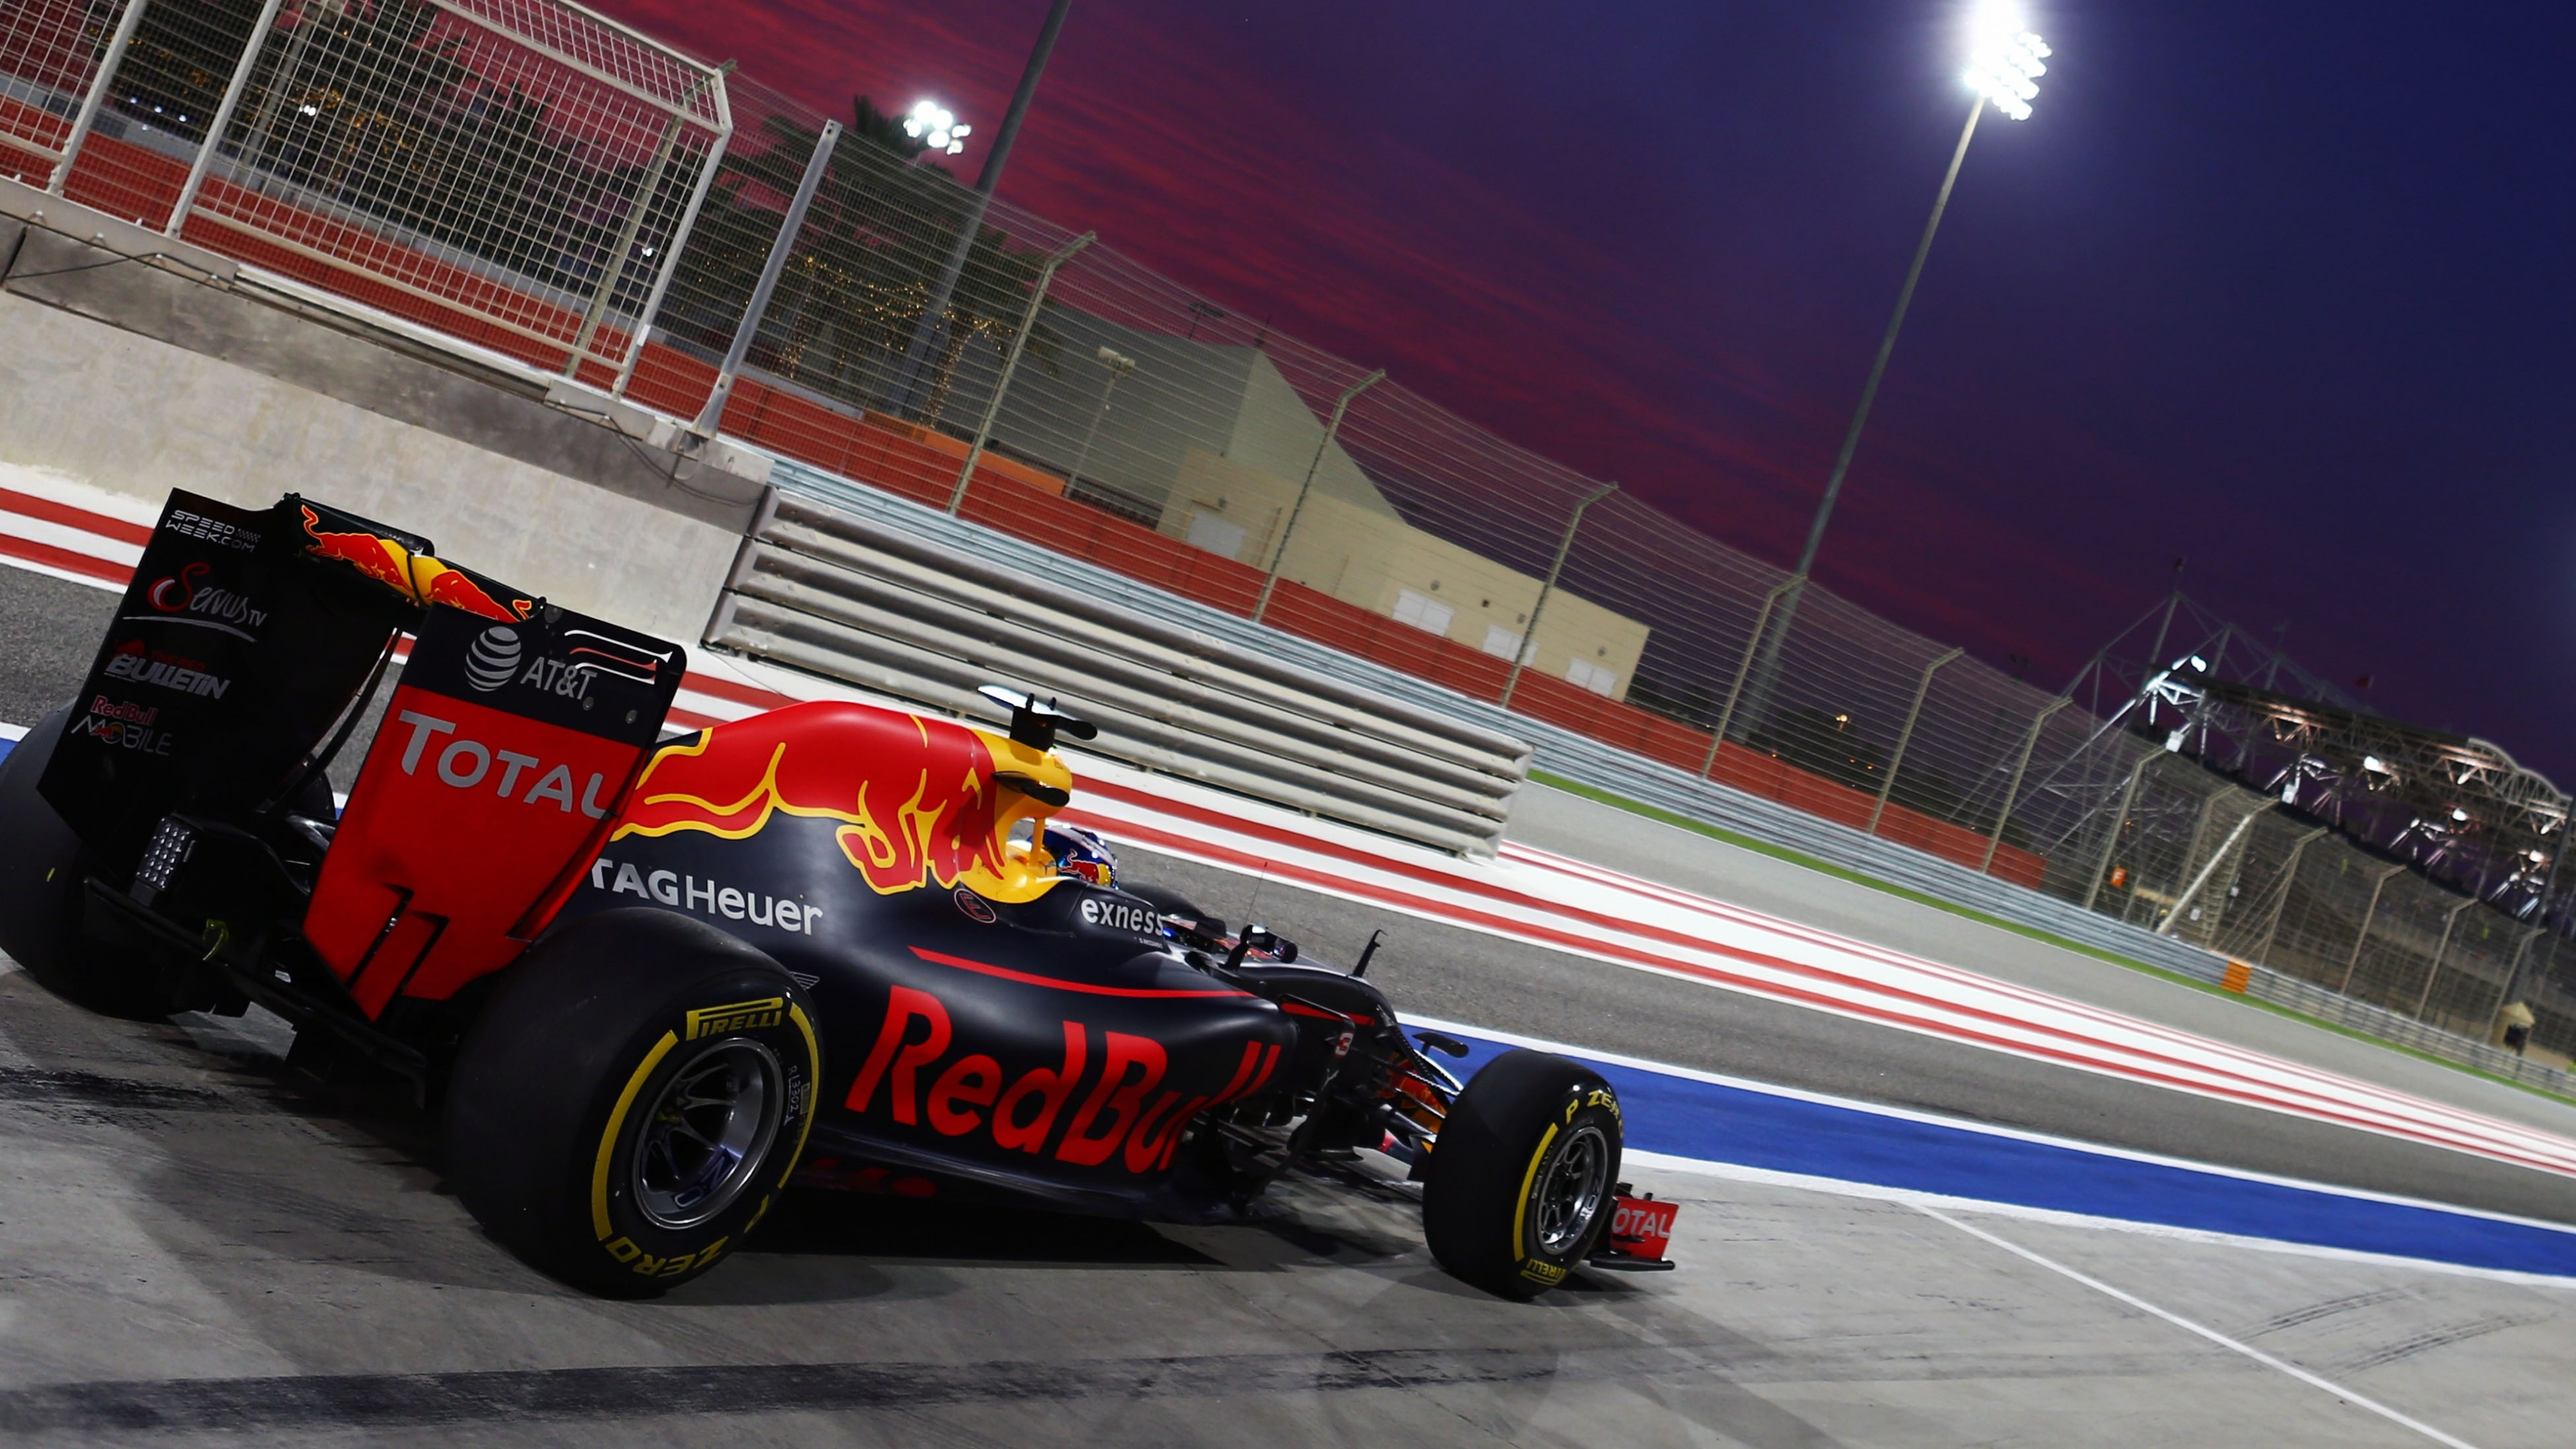 Sport Cars Wallpapers With Girls Wallpaper Red Bull Rb12 Red Bull Racing F1 Cars Amp Bikes